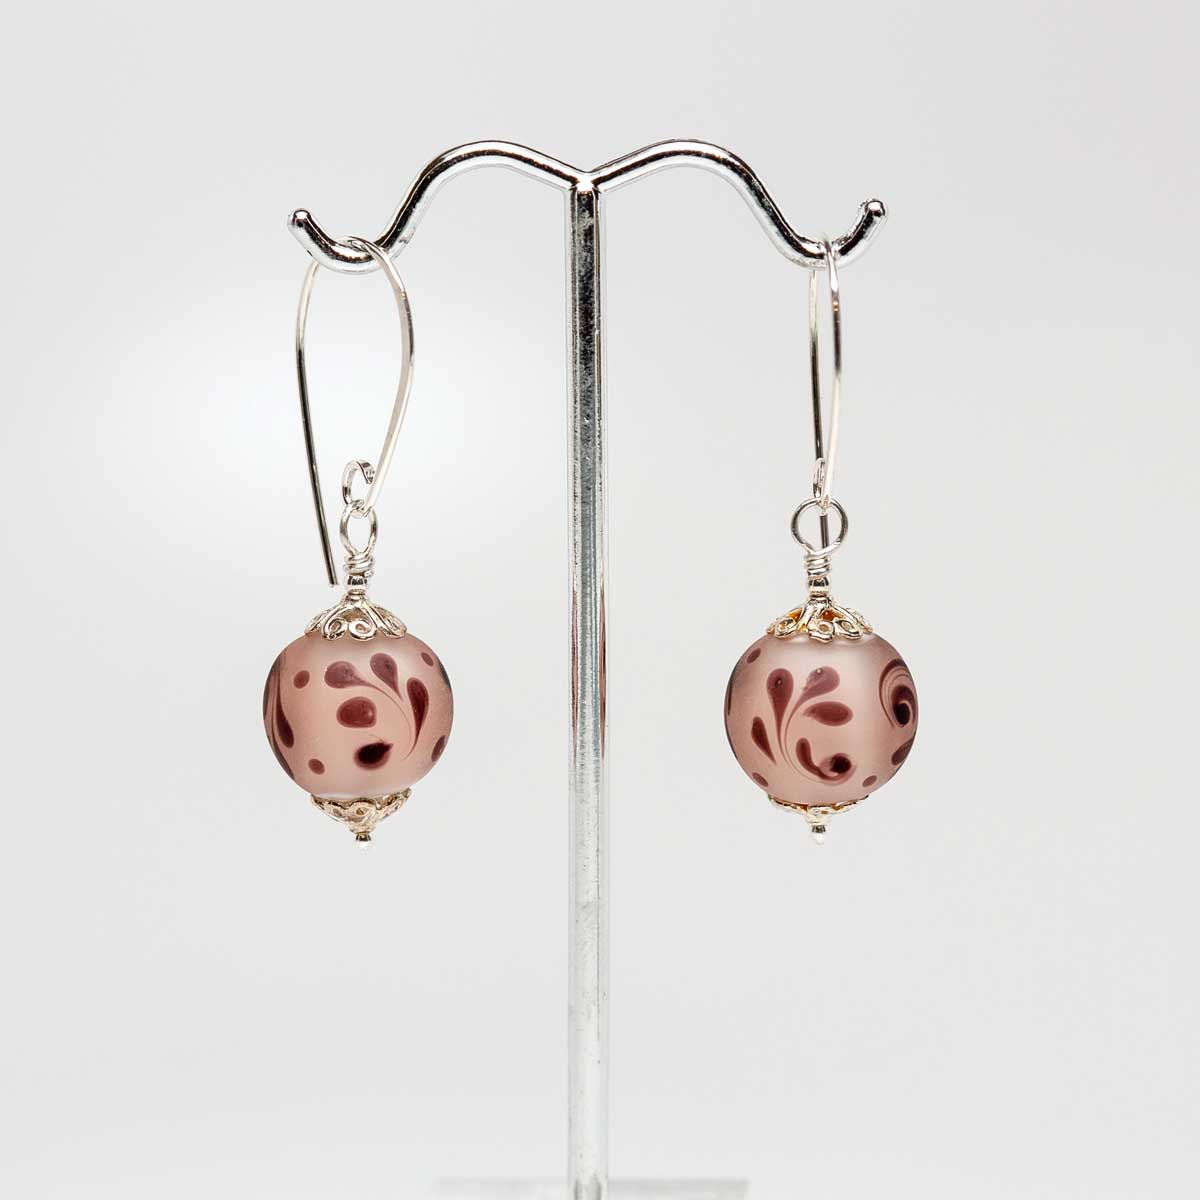 Etched Peach drop earrings